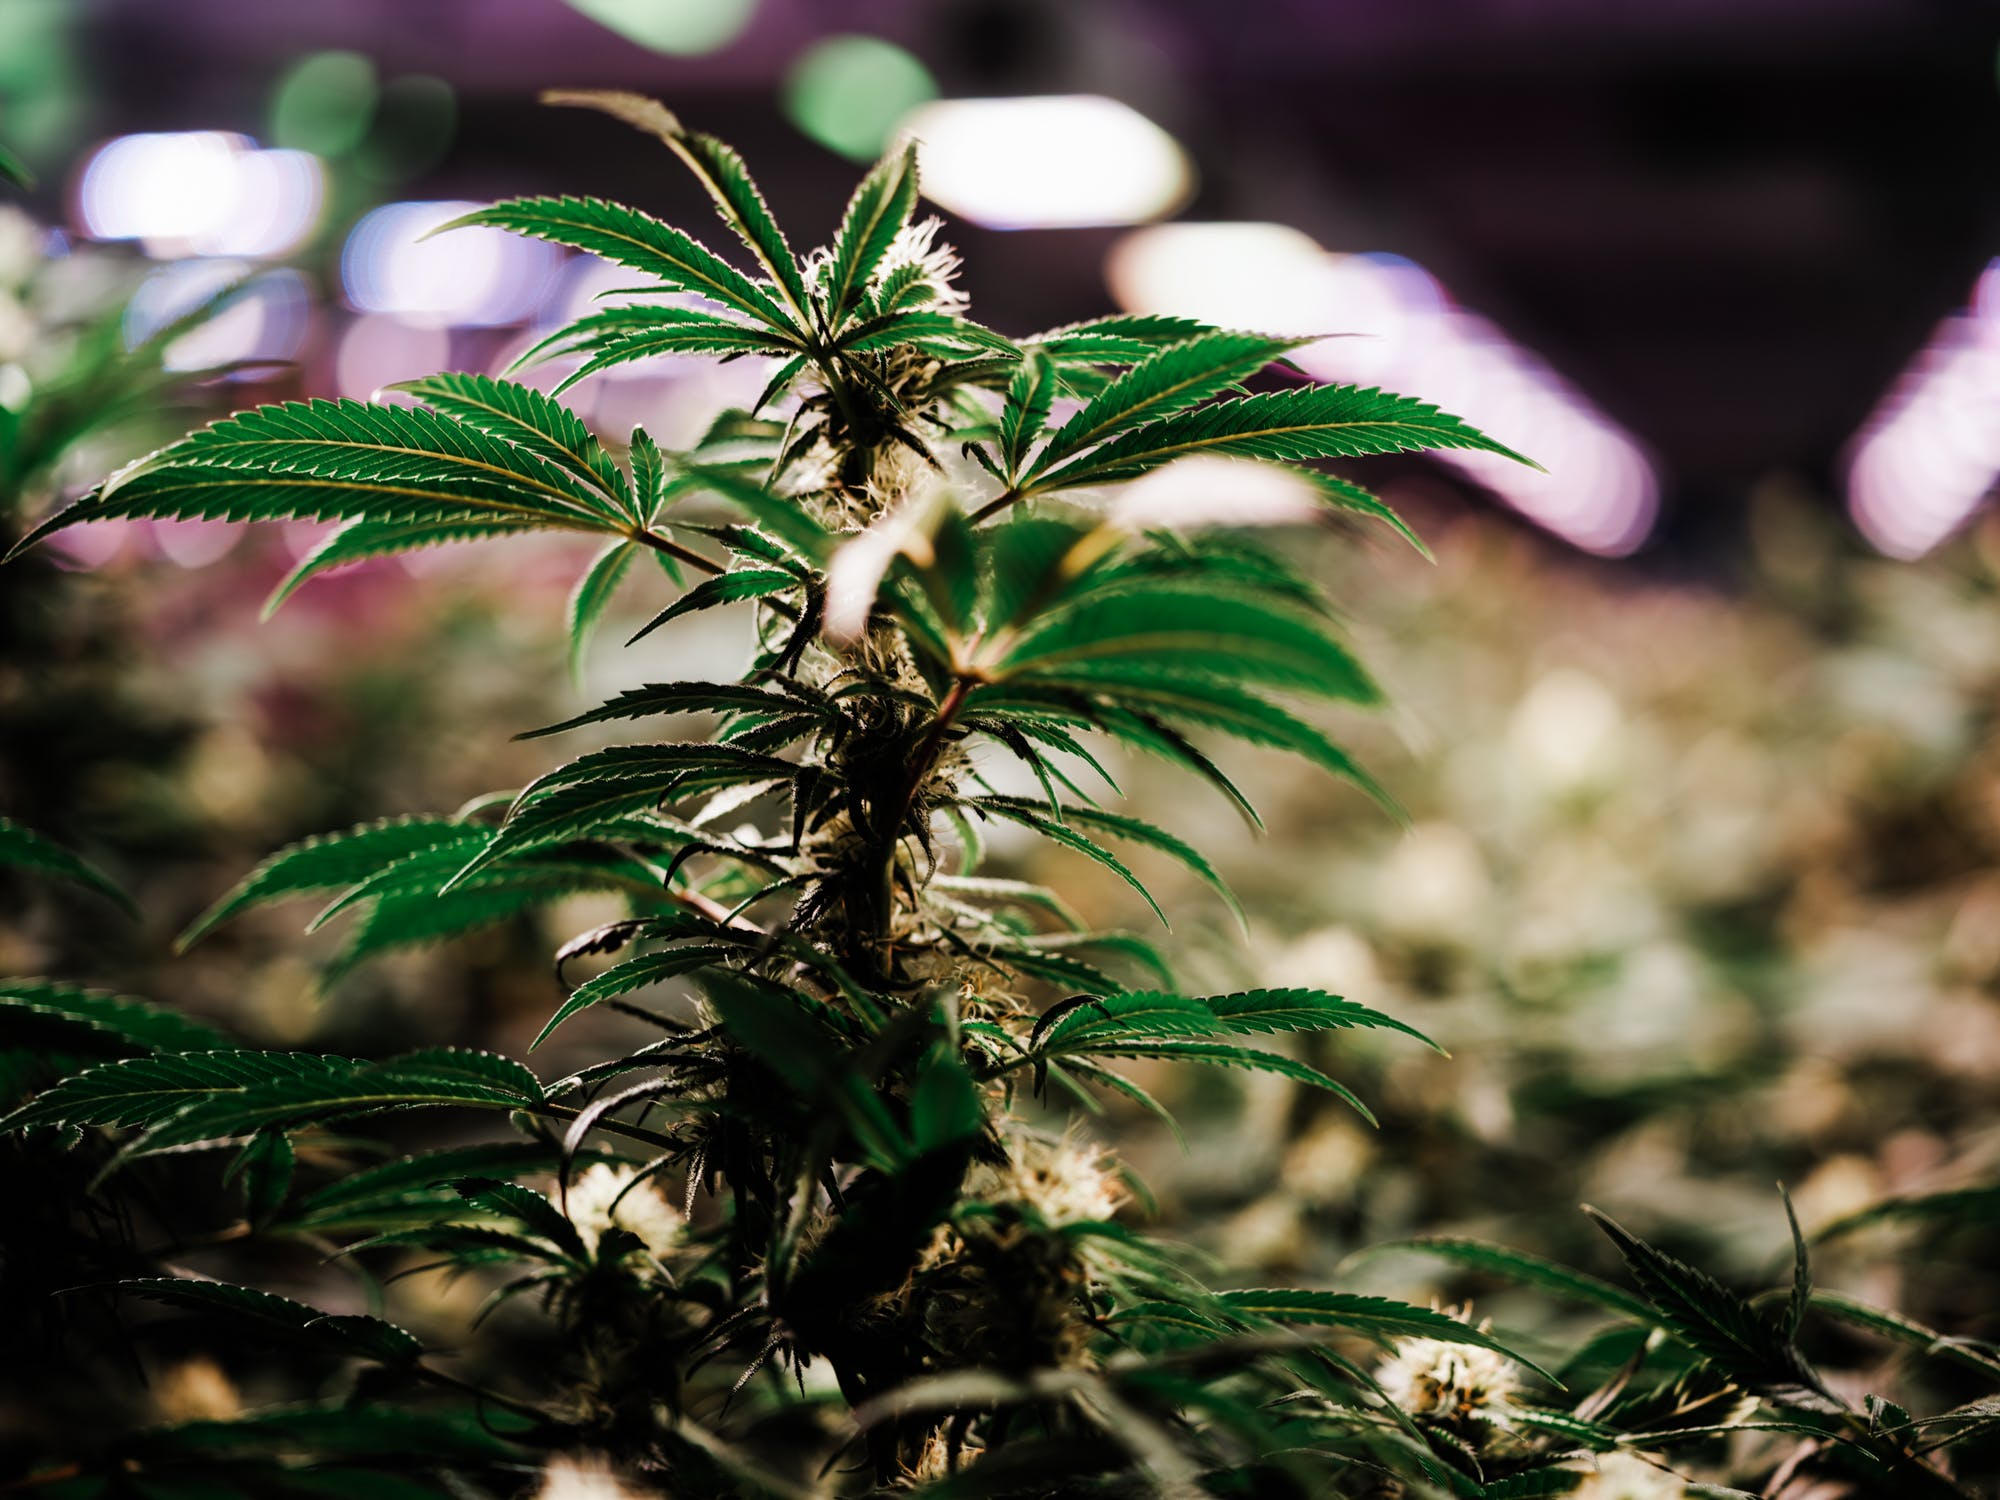 Green Relief 1 of 16 For The First Time, Thailand Seriously Considers Legalizing Medical Marijuana